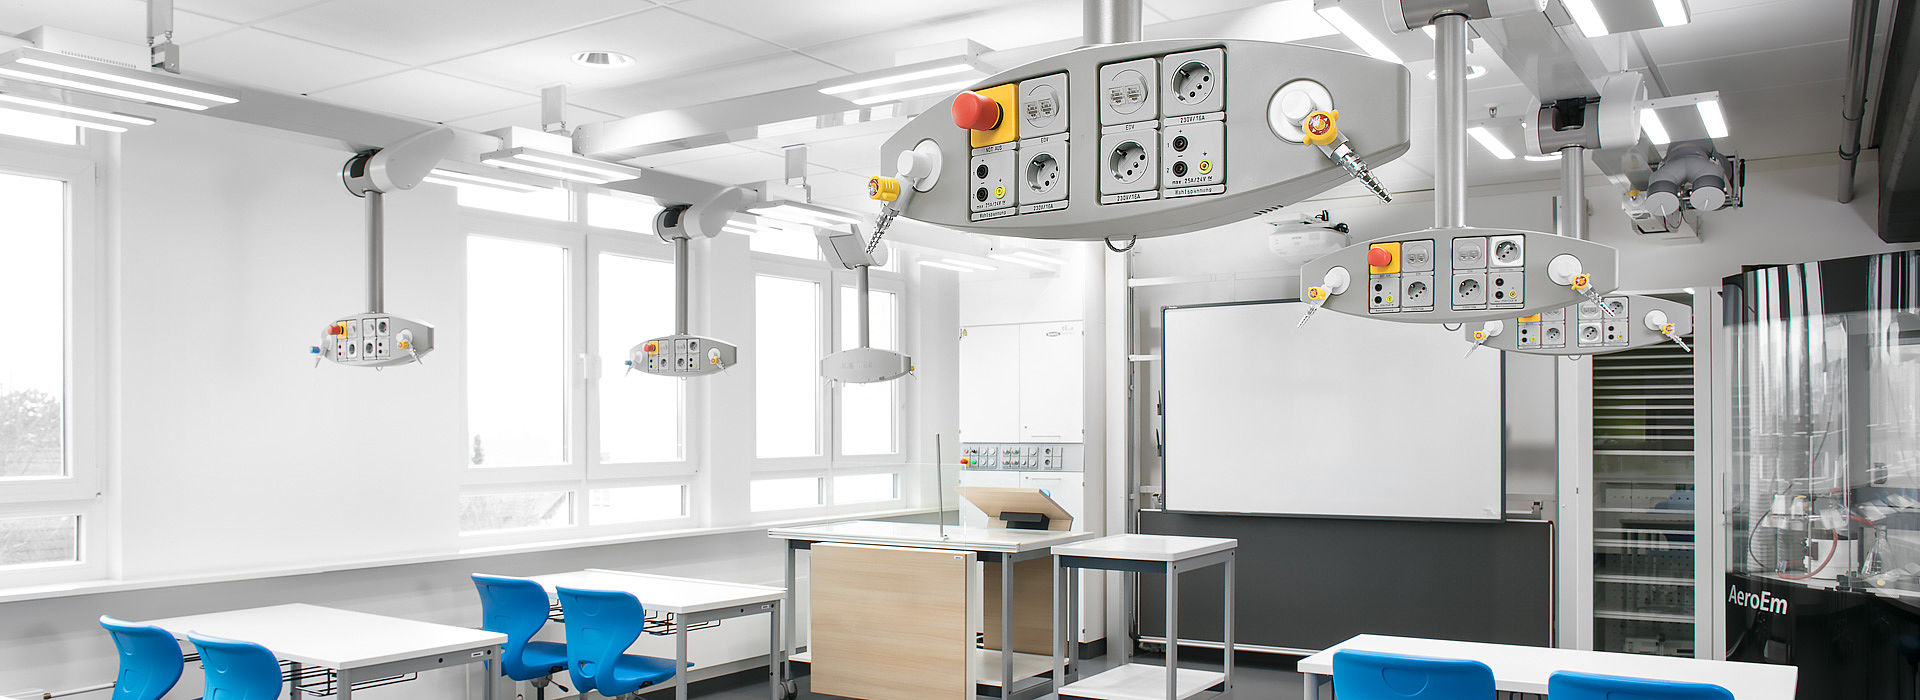 Classroom with Medienlift